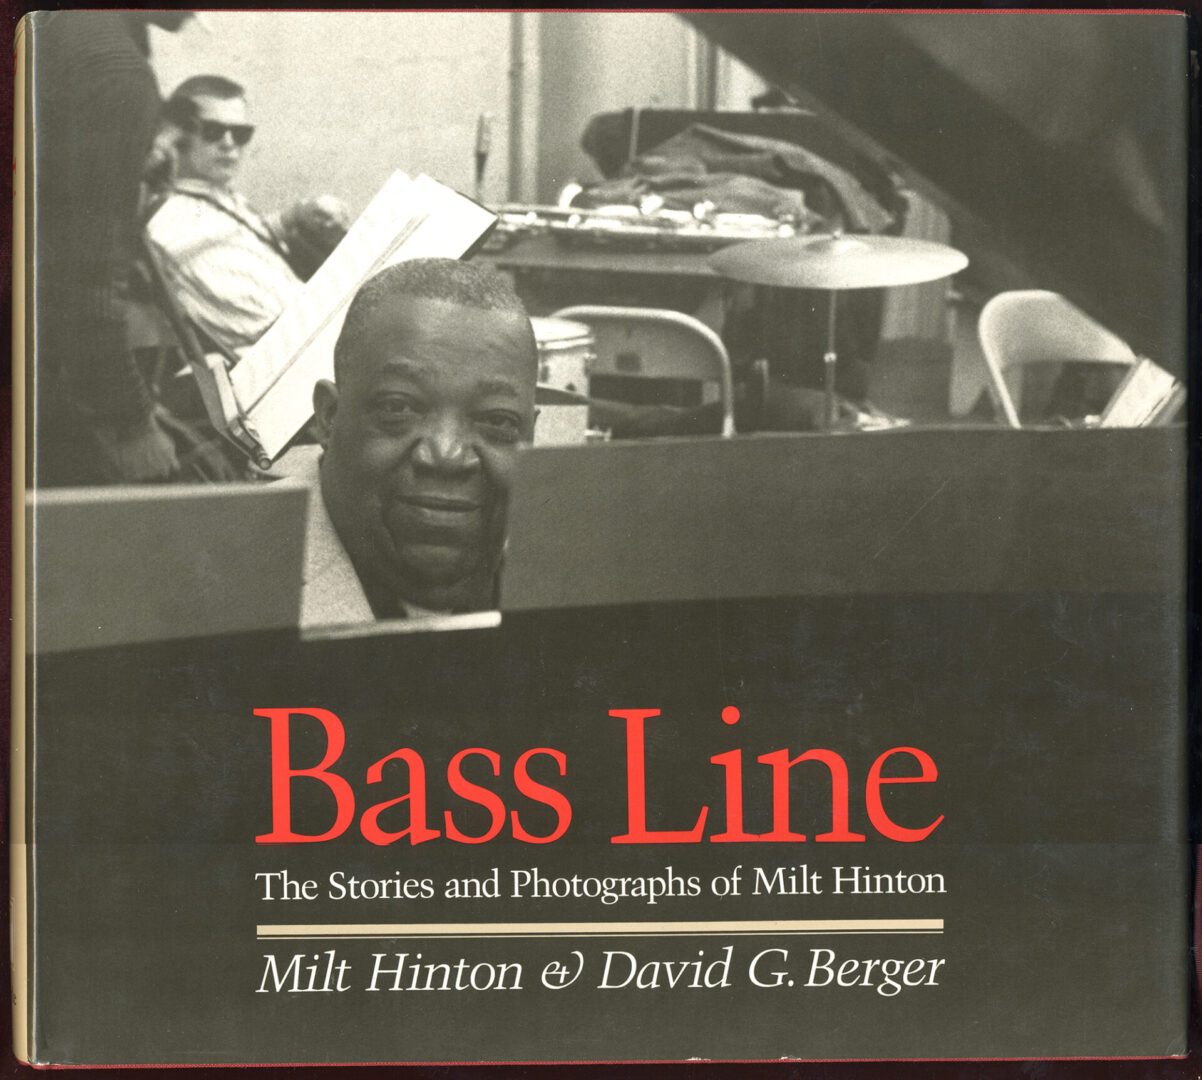 Bass Line BOOK_JACKET